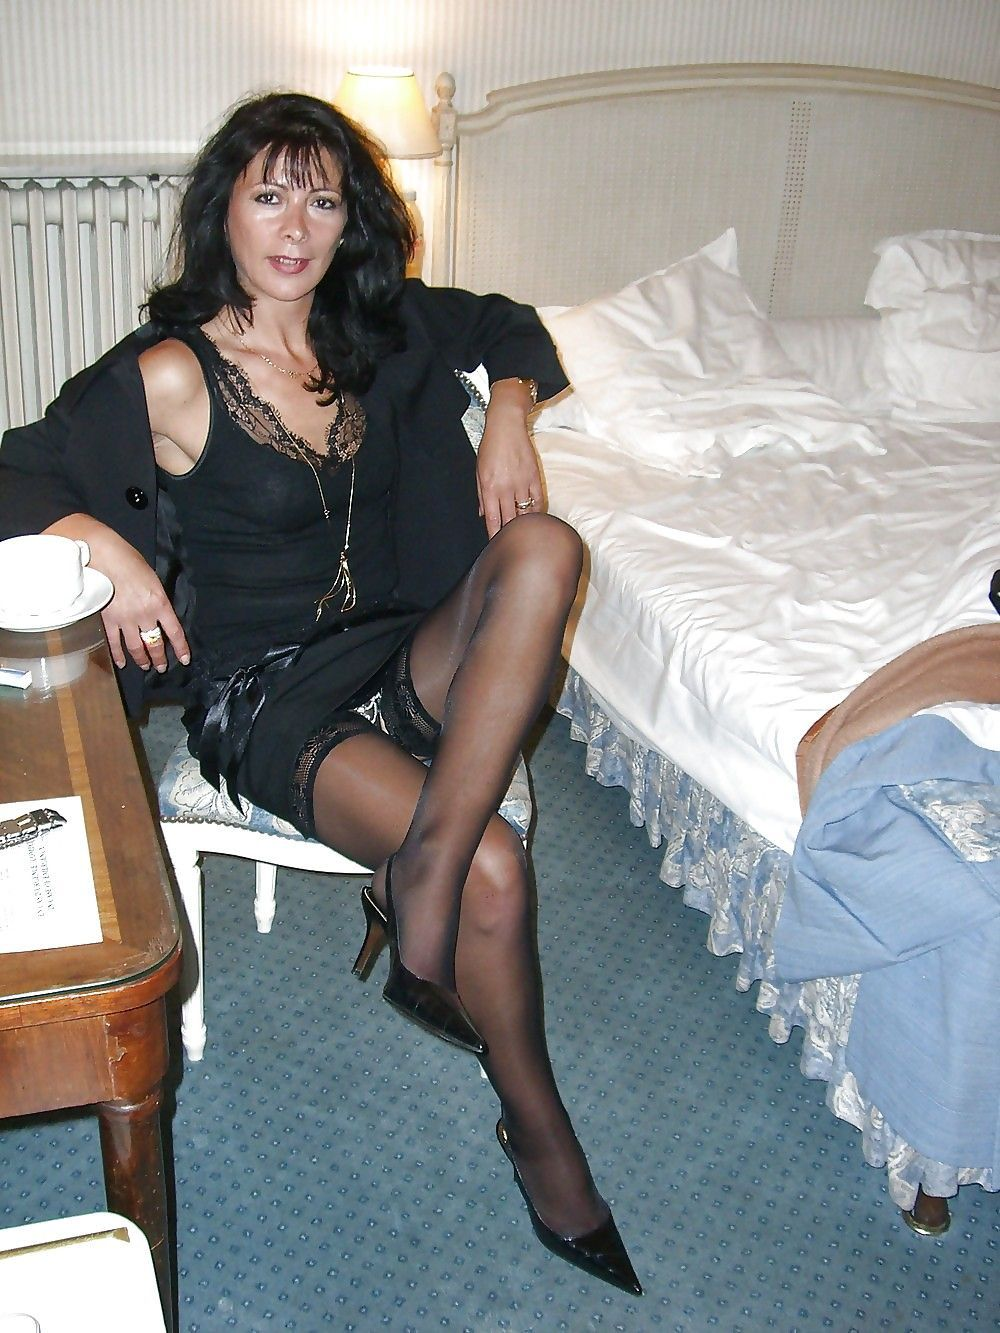 hot nylon legs | hot mature ladies, milfs and gilfs | pinterest